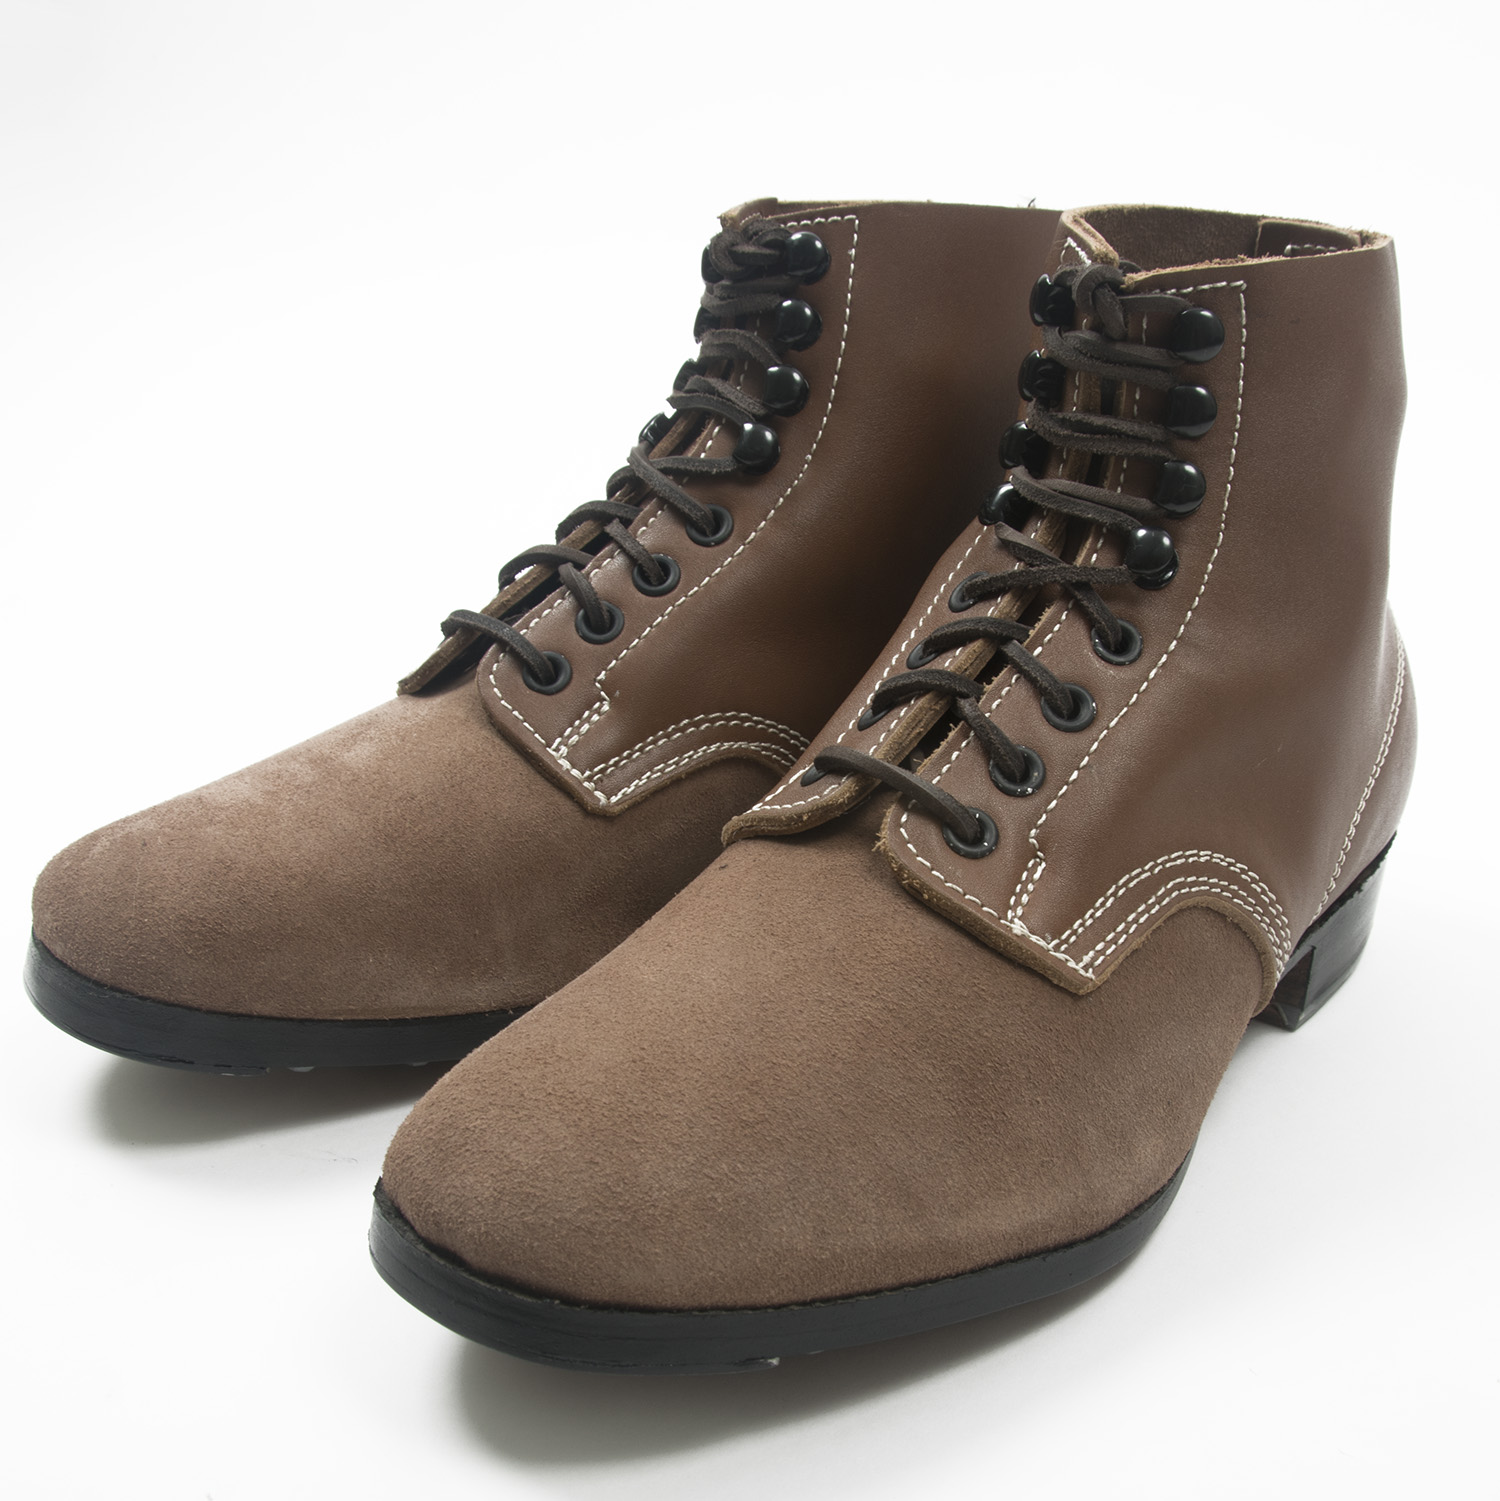 german wwii low boots oscocbi